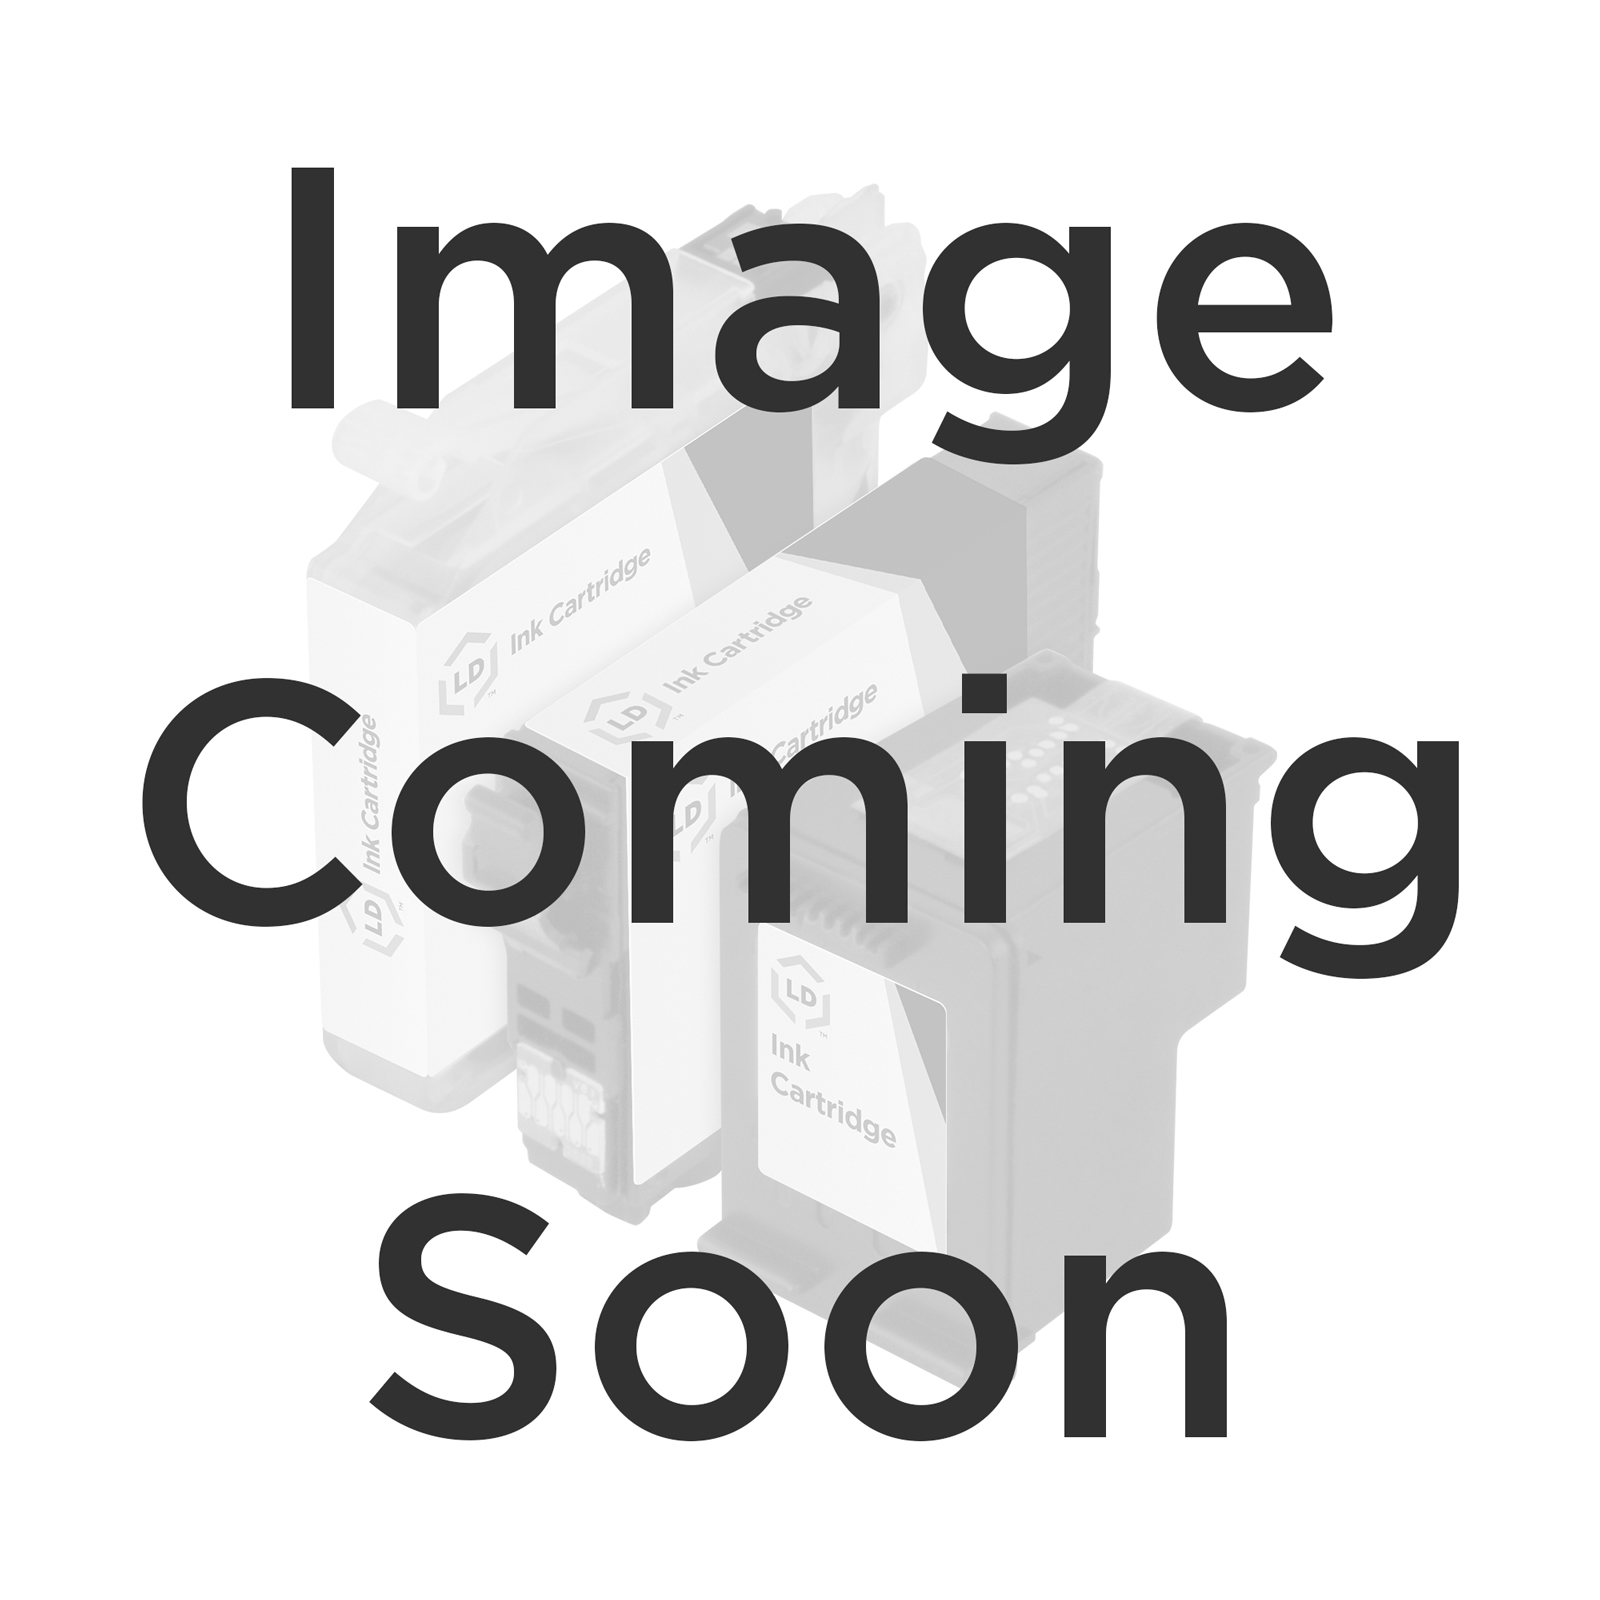 At-A-Glance Week by Week Executive Smart Planner